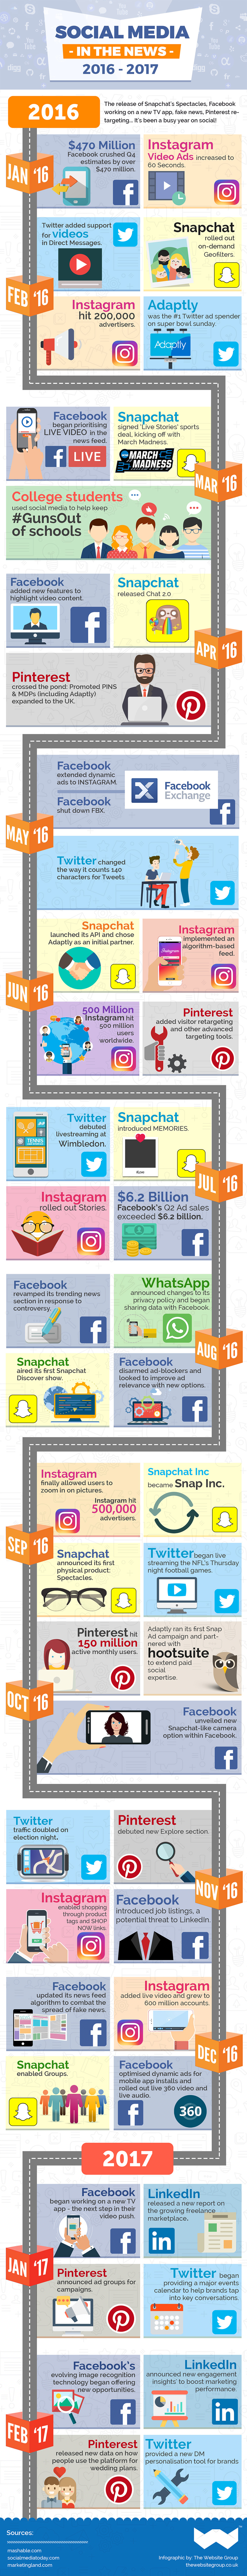 Social Media in the News 2016 - 2017 [INFOGRAPHIC]